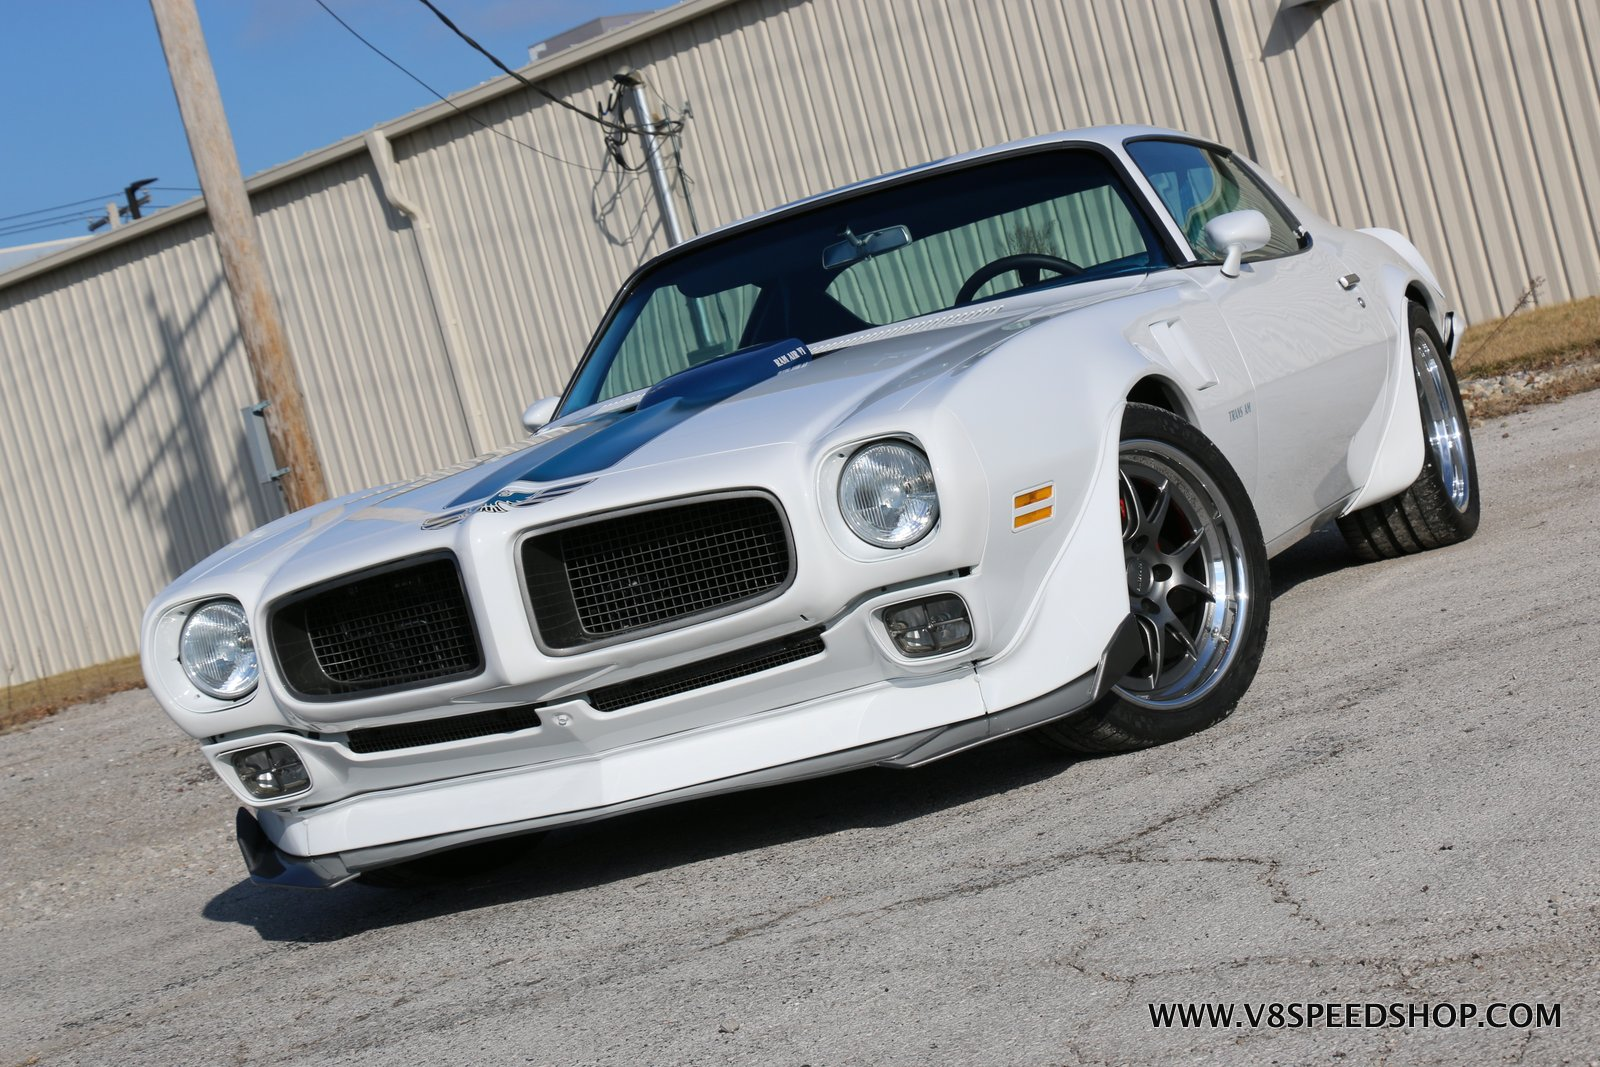 1970 Pontiac Trans Am Pro-Touring Project at V8 Speed & Resto Shop